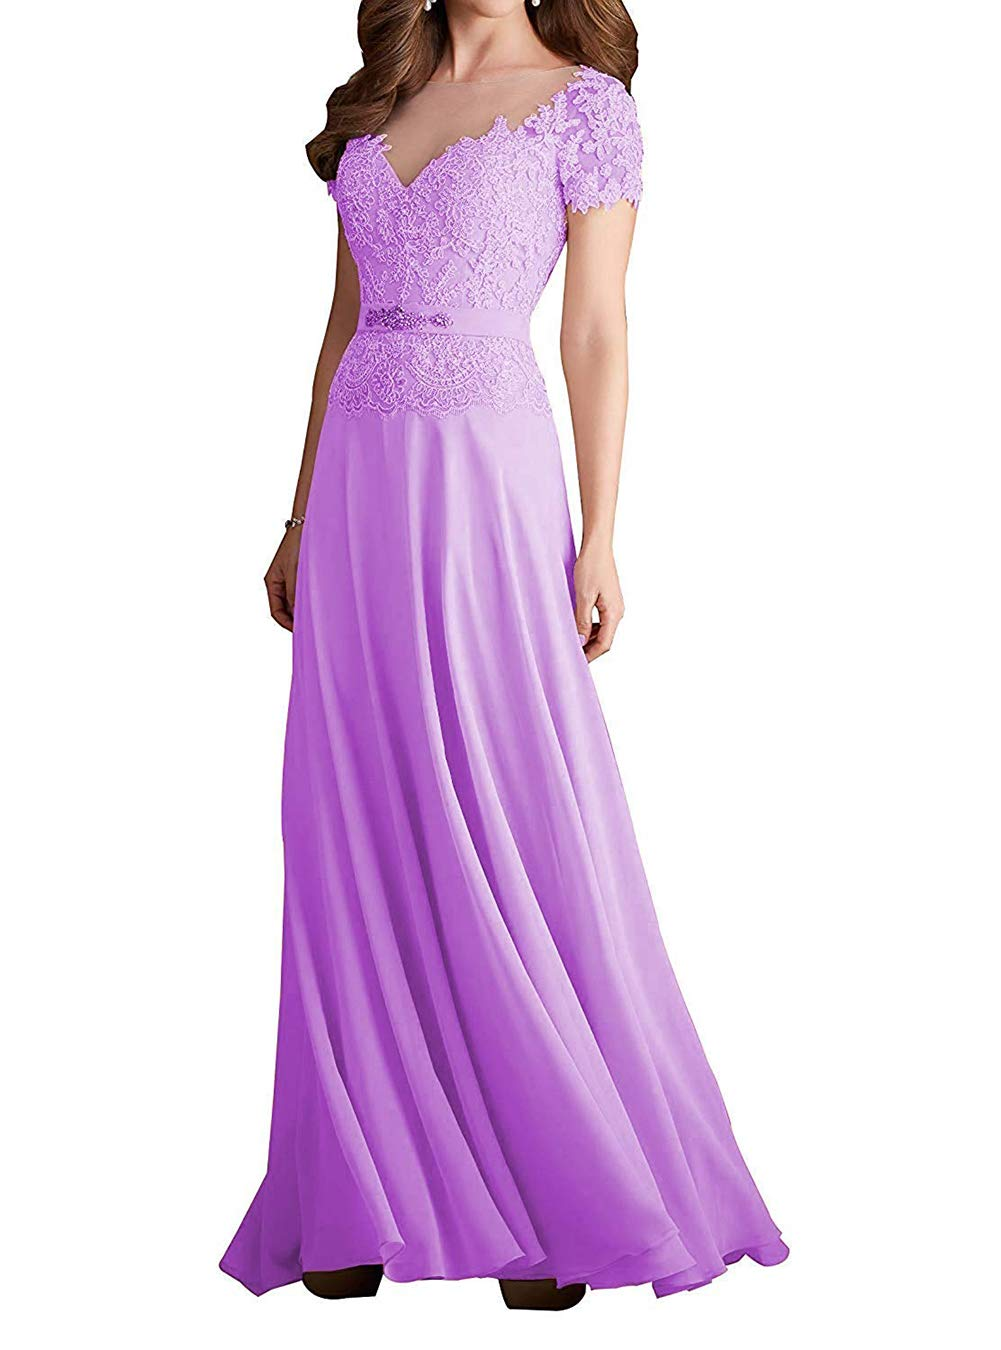 12a4435cc09 ... Women s Short Sleeves Bridesmaid Dresses A-Line Long Evening Formal  Gowns UG128 Lilac Size 8.   